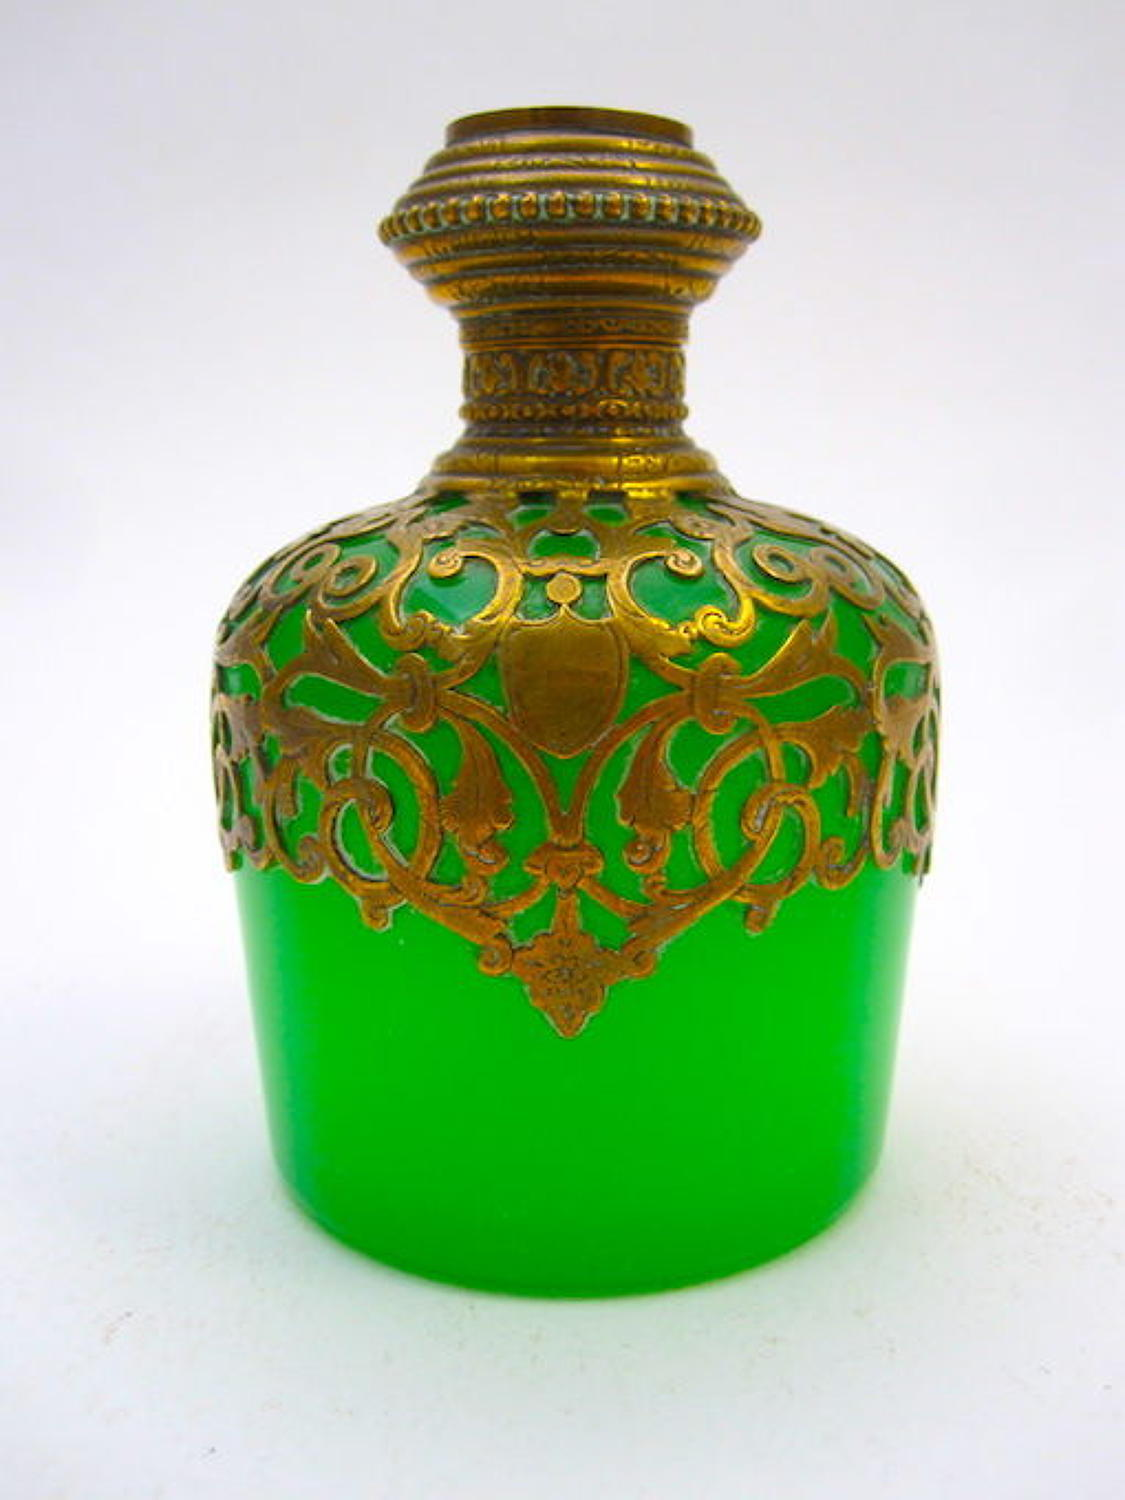 Antique Palais Royal Green Opaline Glass Perfume Bottle.